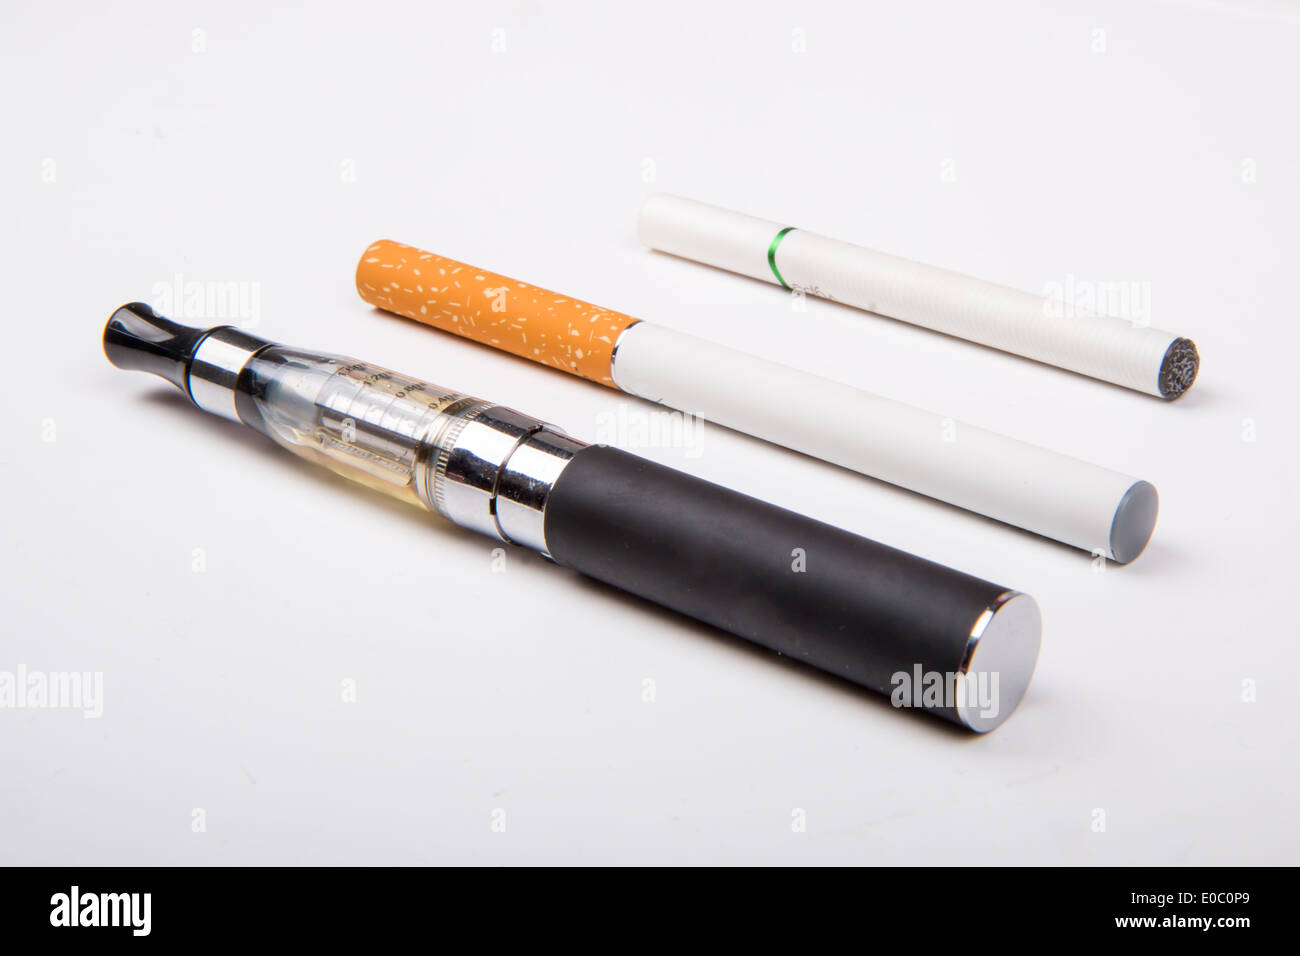 Various types of e-cigarettes: vaporiser, rechargeable, disposable - Stock Image